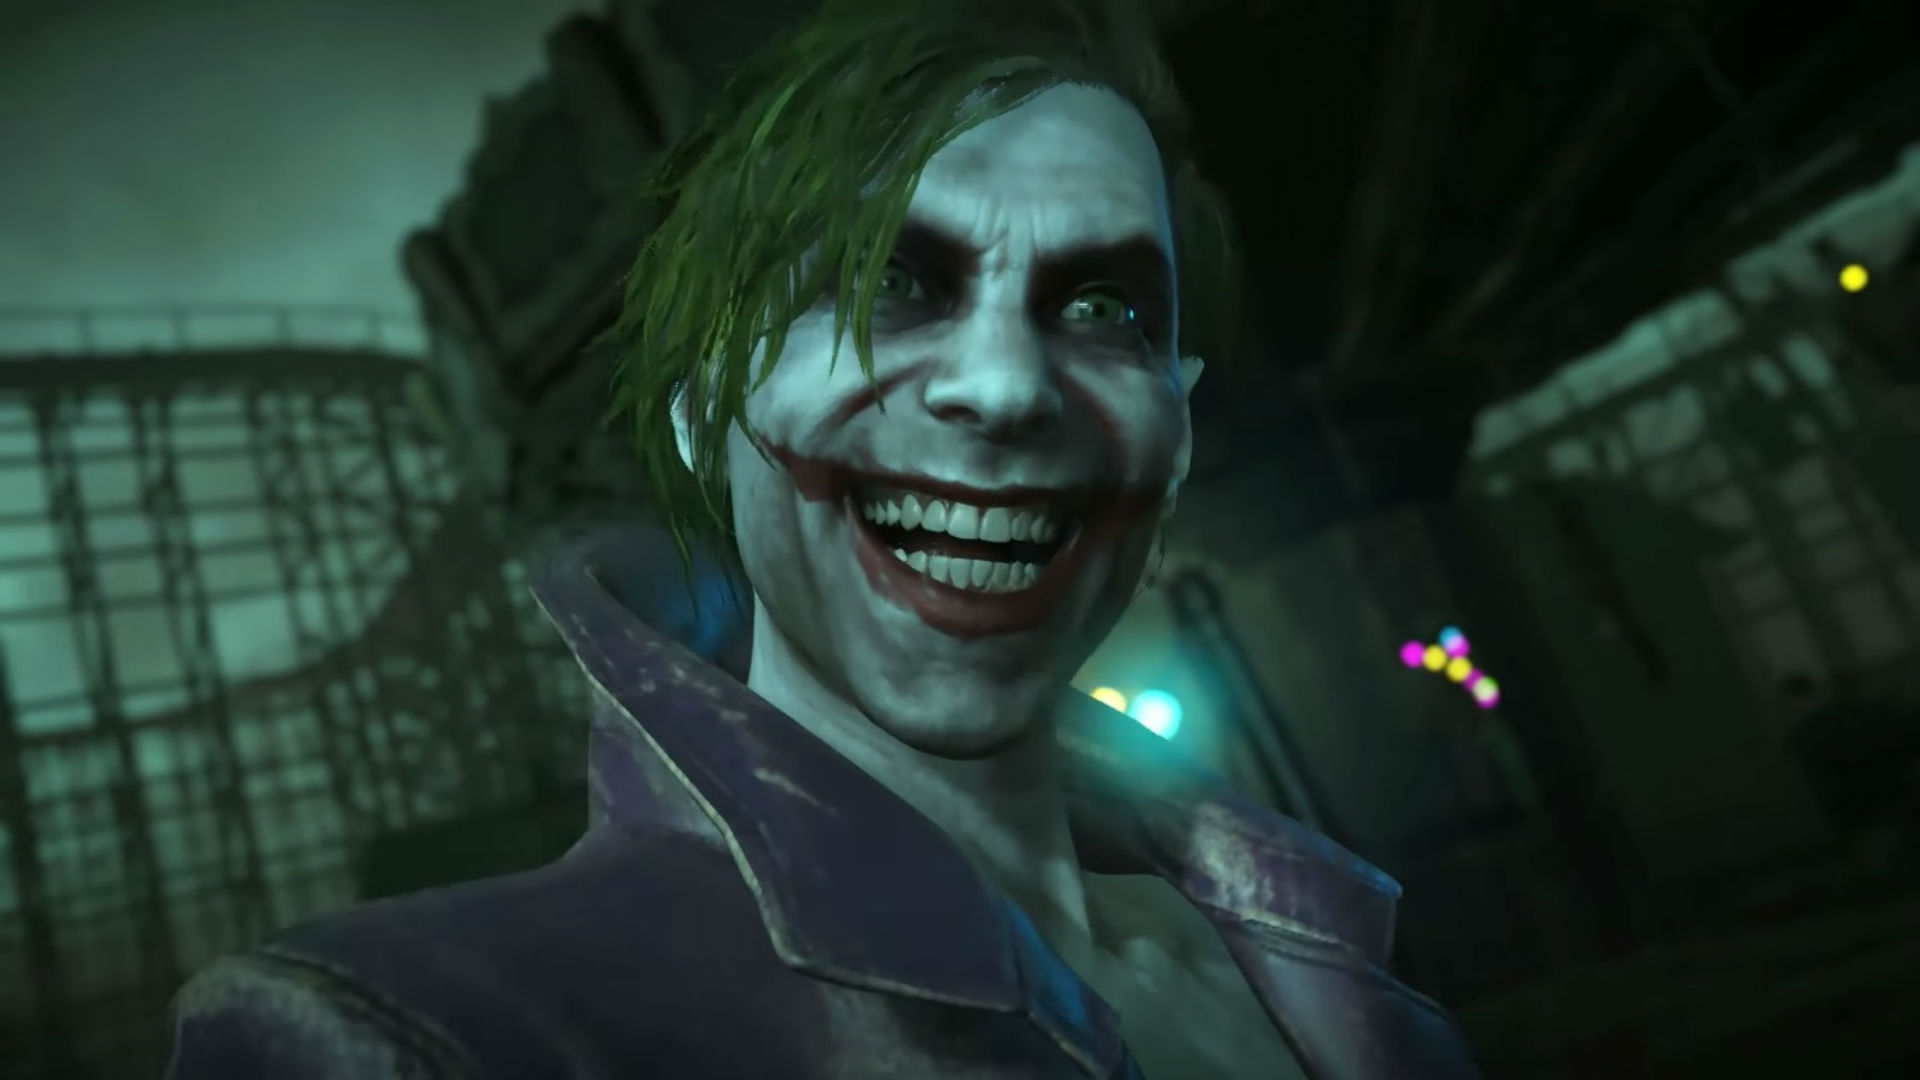 Joker Puts A Smile On That Face In Newest Injustice 2